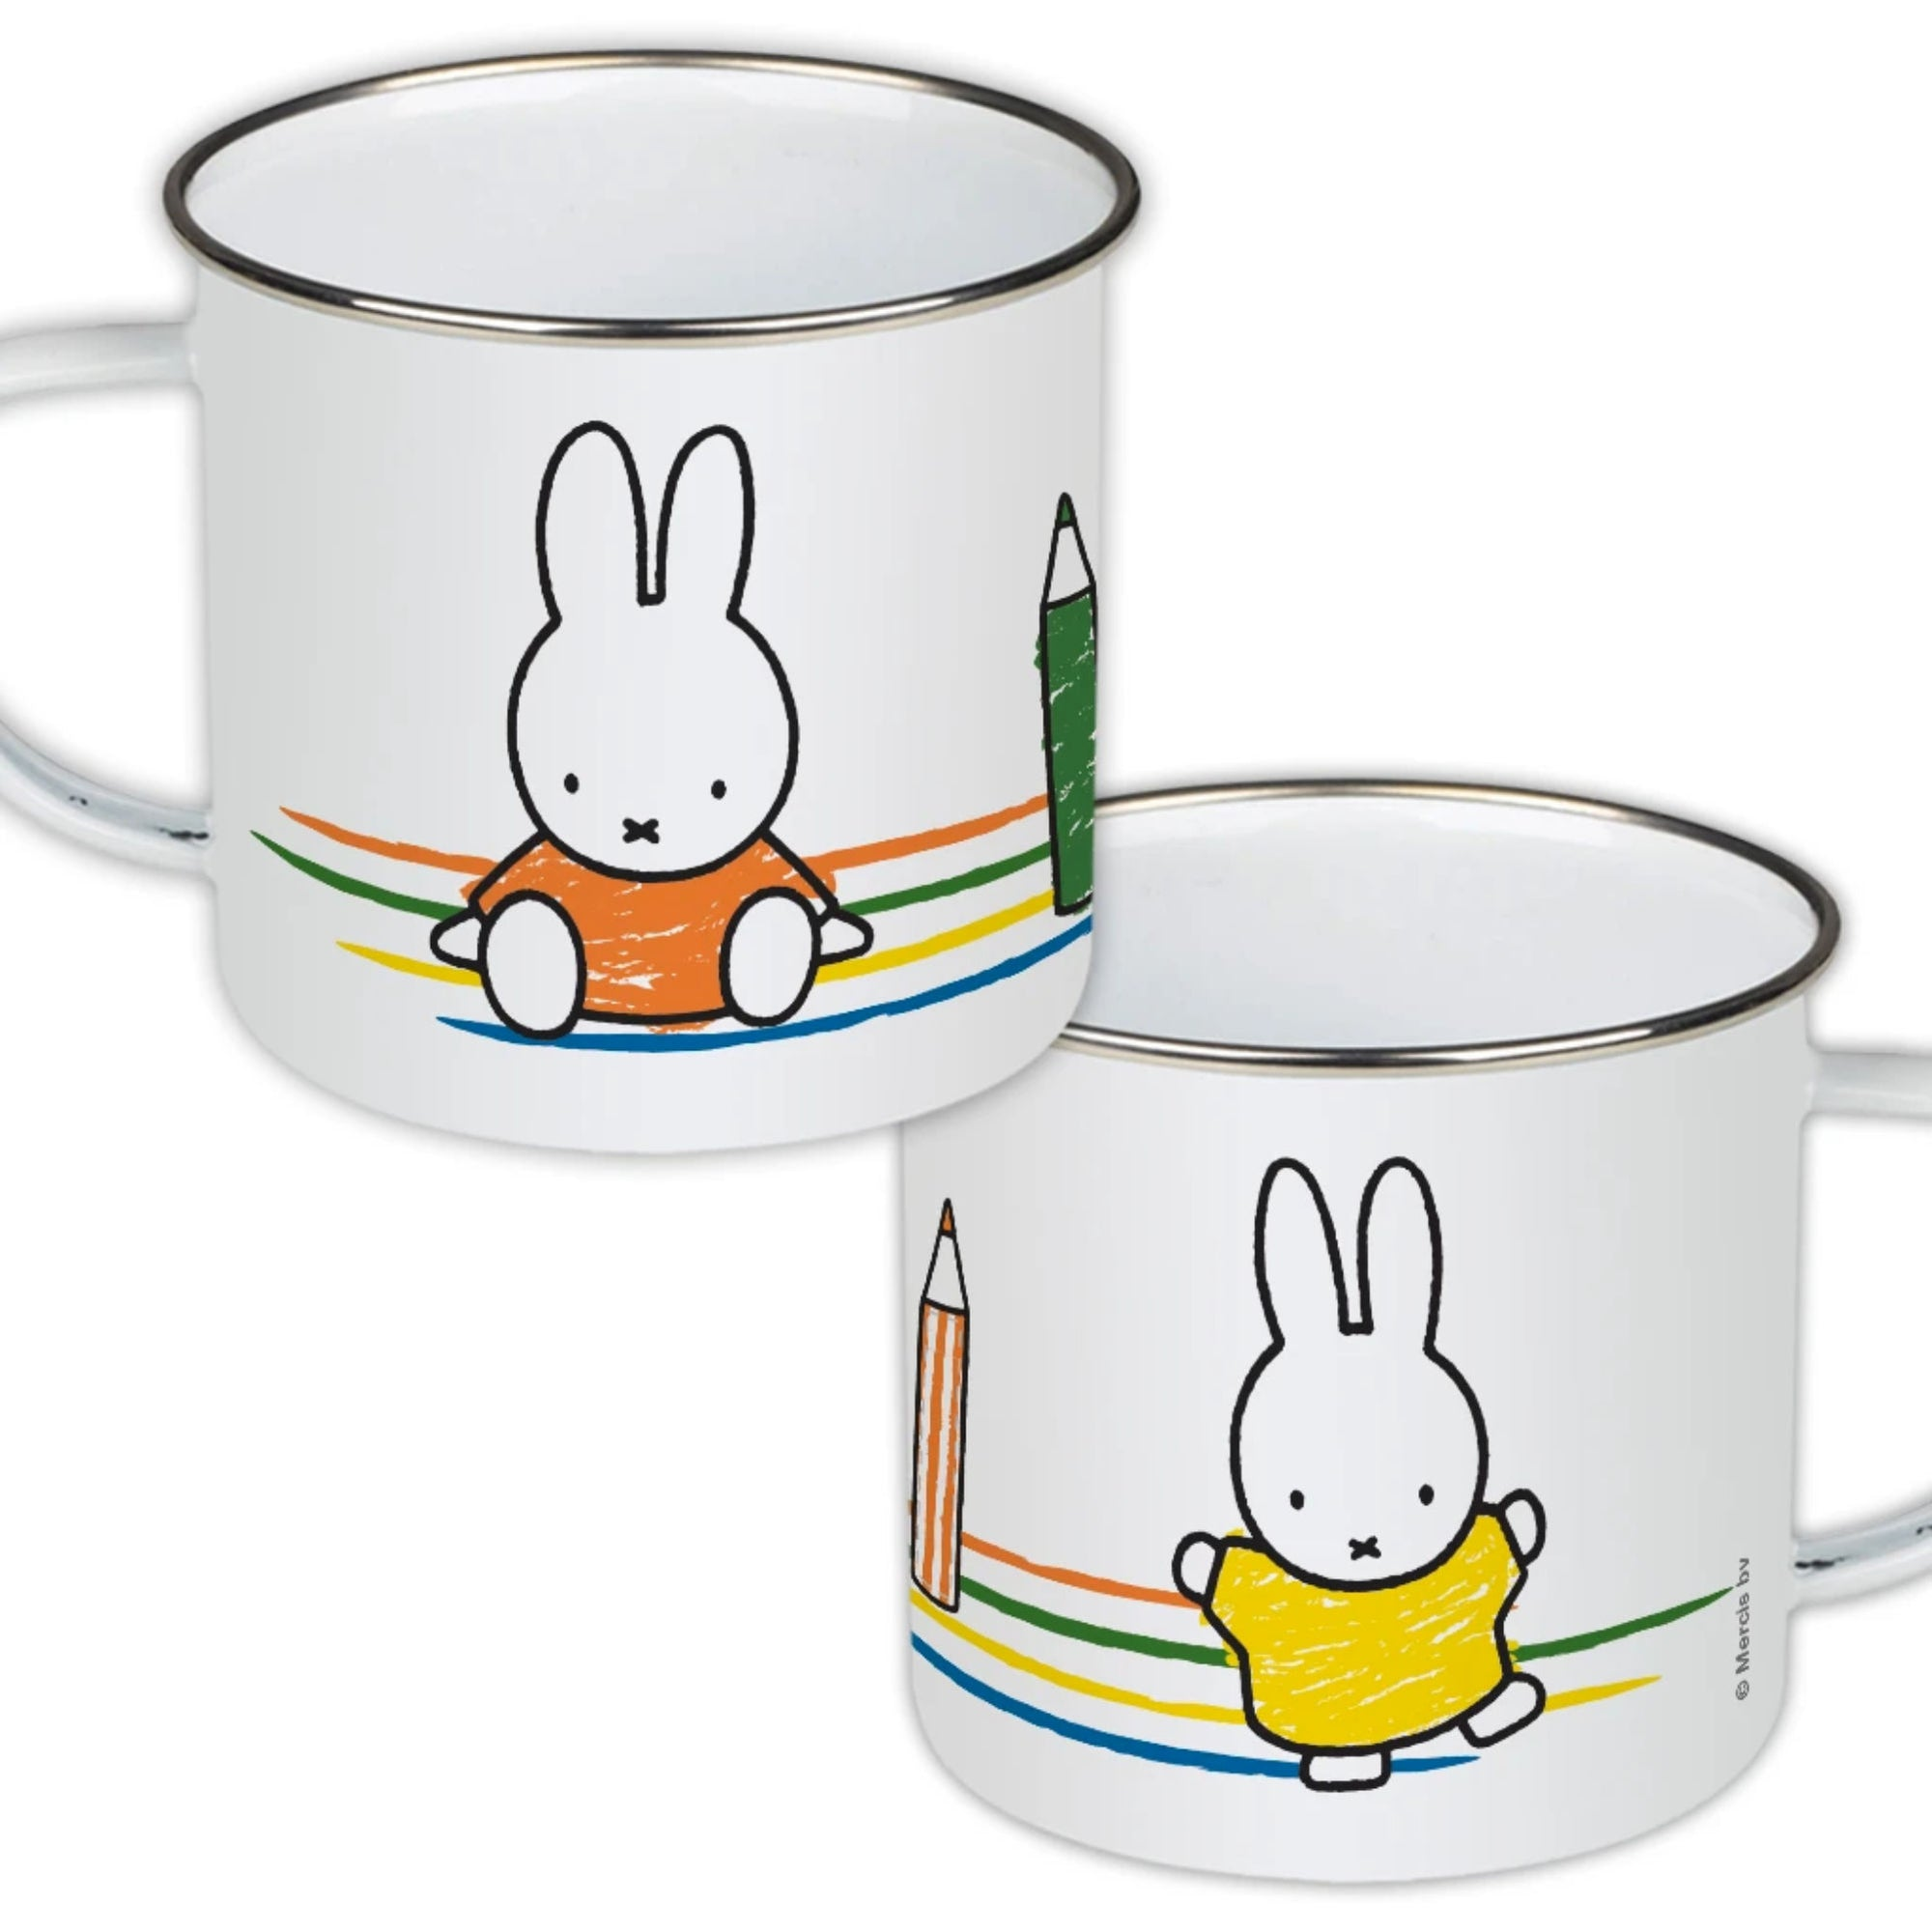 Miffy Enamel Mug, colouring pencils